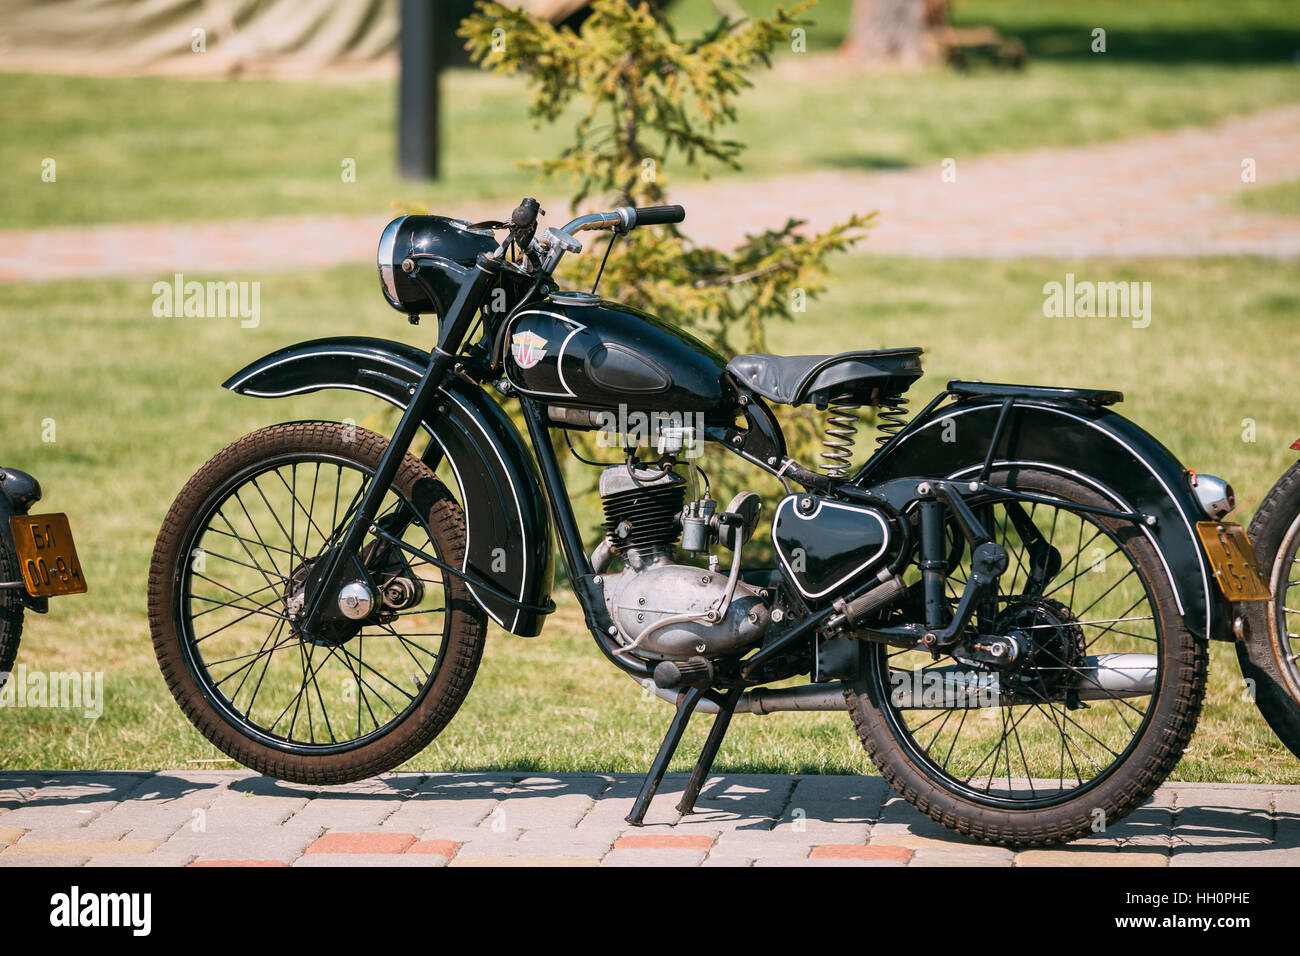 Gomel, Belarus - May 9, 2016: Minsk M1A Or M1nsk, The Old Rarity Soviet Two-Wheeled Black Motorcycle, The First - Stock Image